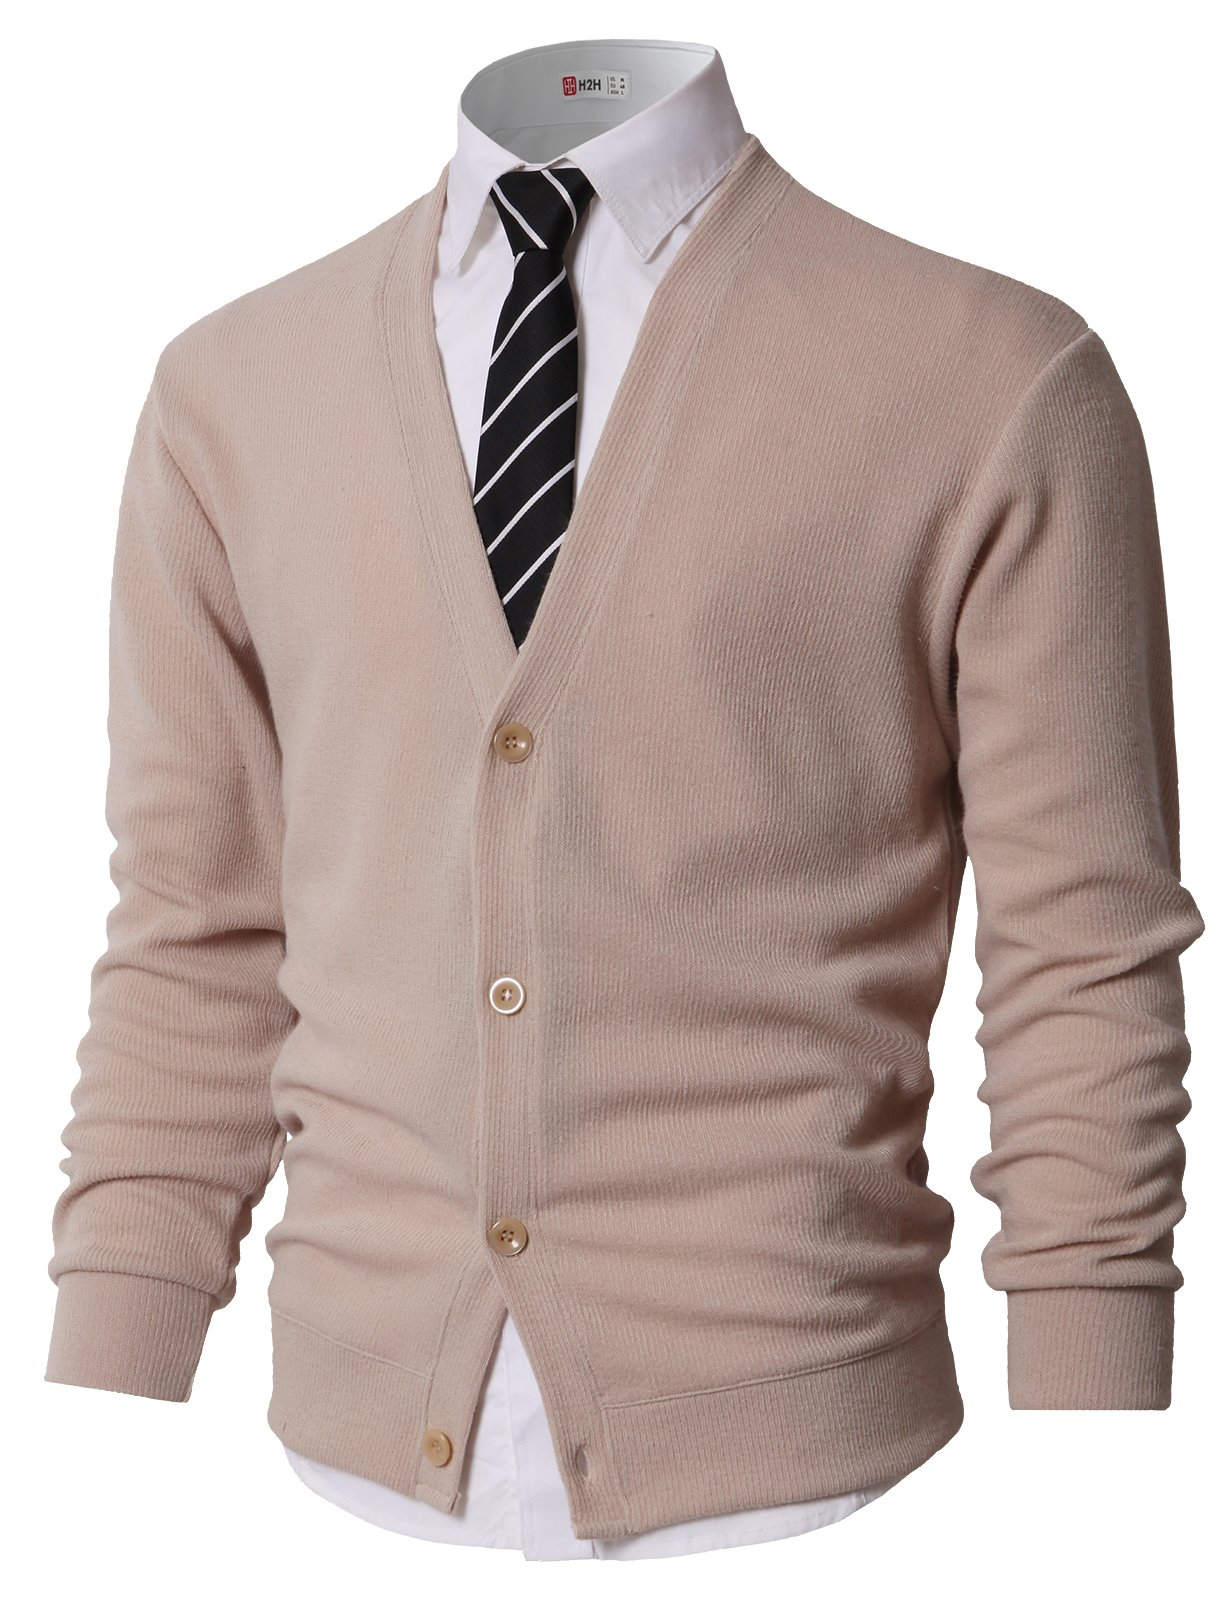 H2H Men's Basic Slim Fit Cardigan Sweater Casual V Neck Button Down Knitwear Beige US L/Asia XL (KMOCAL0179)